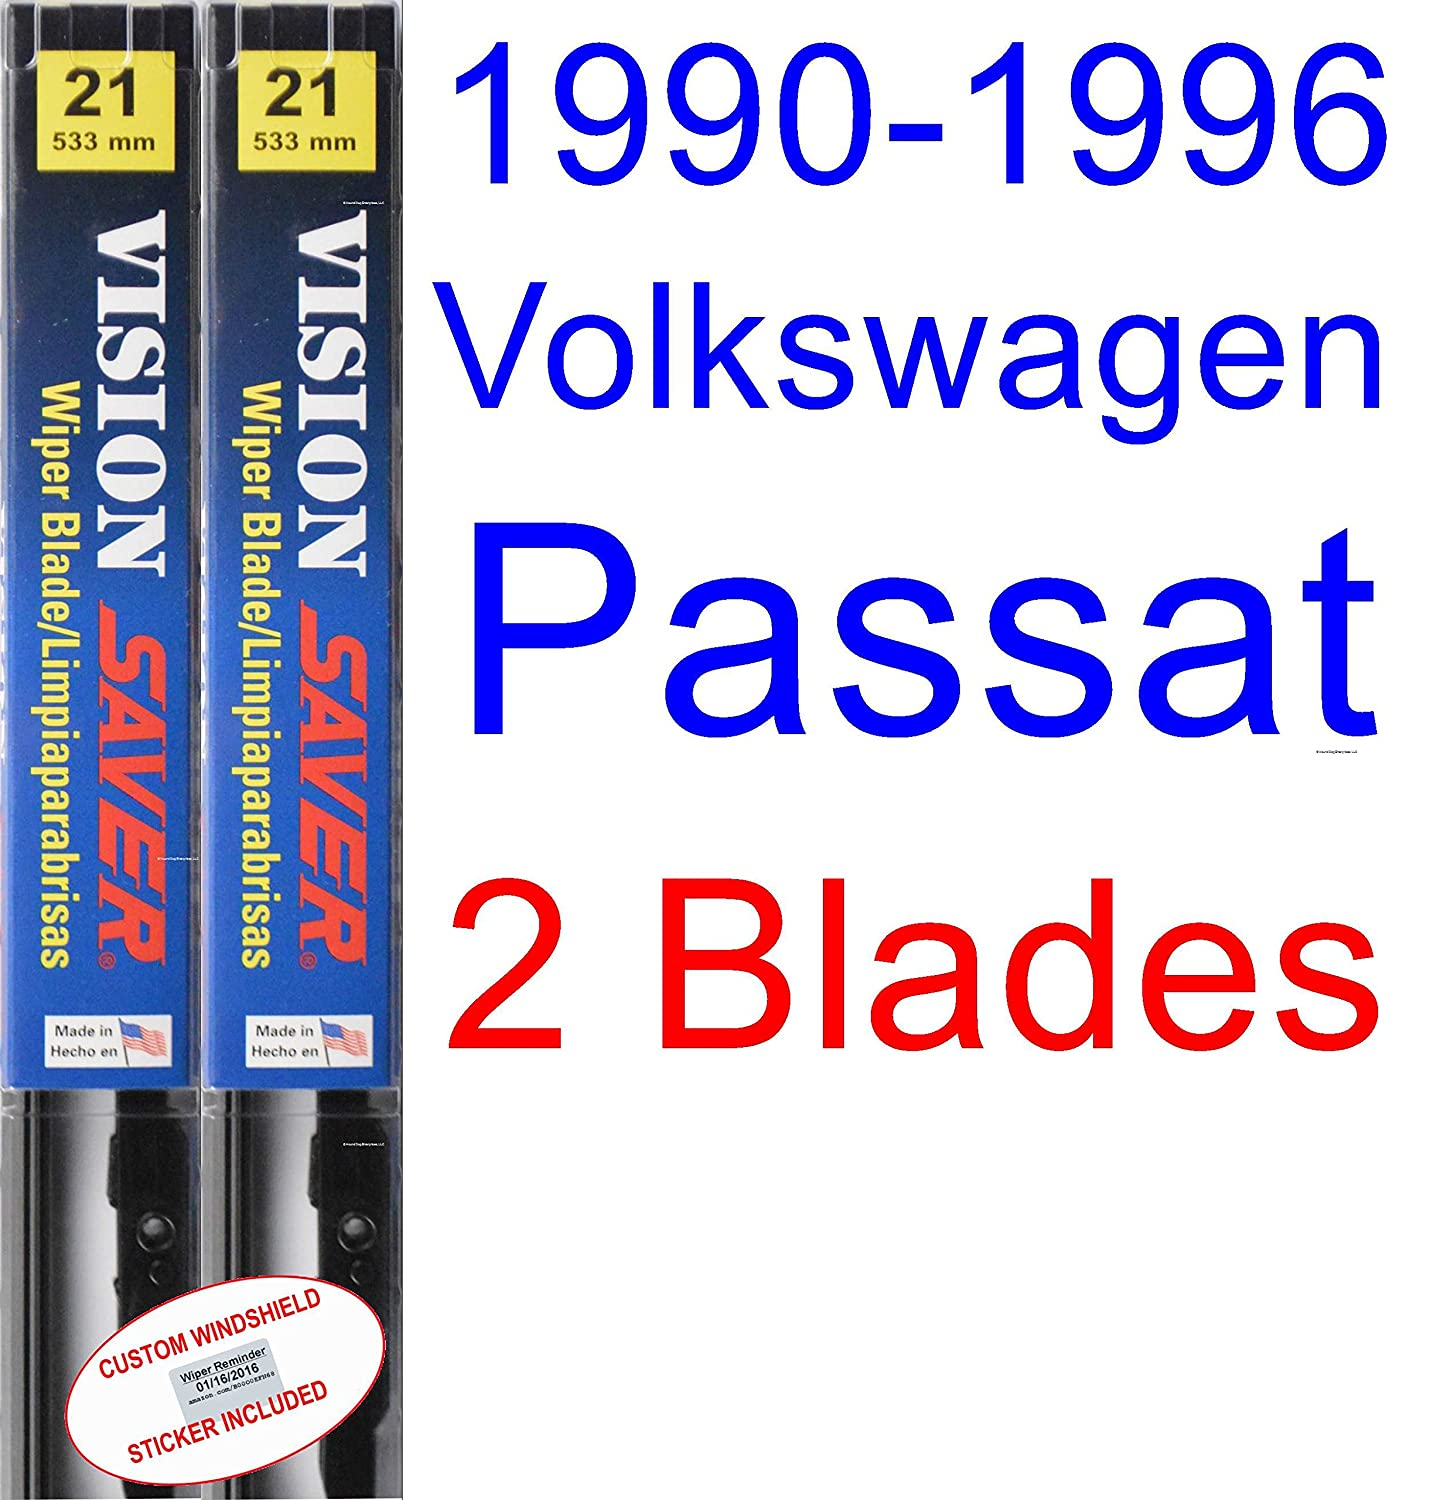 Amazon.com: 1990-1996 Volkswagen Passat Replacement Wiper Blade Set ...